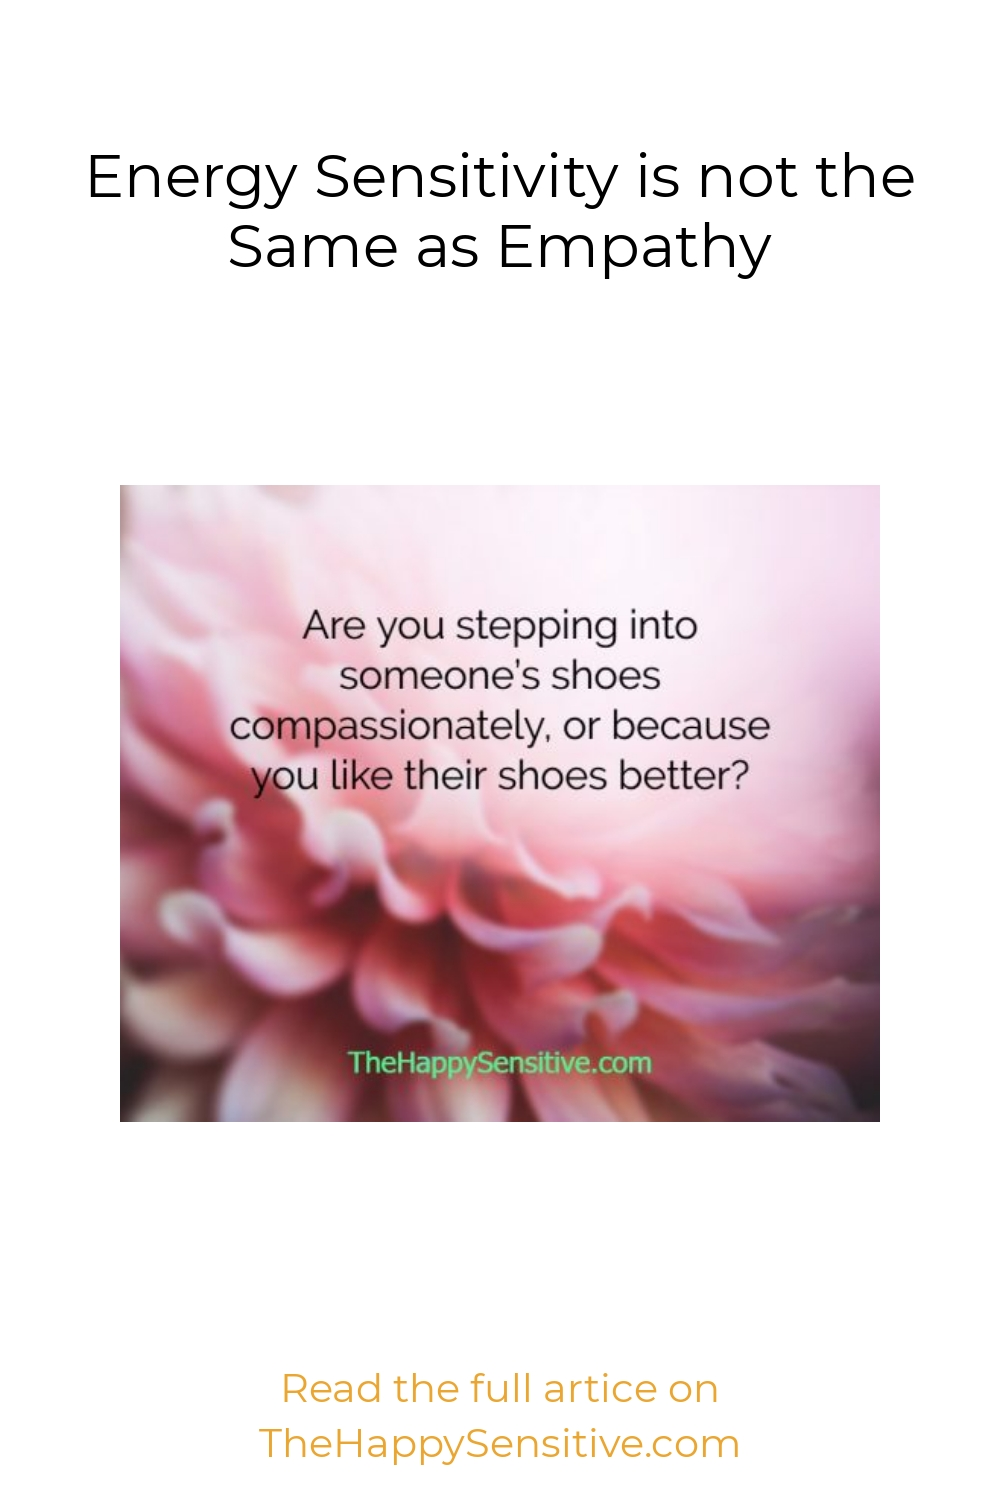 Energy Sensitivity is not the Same as Empathy